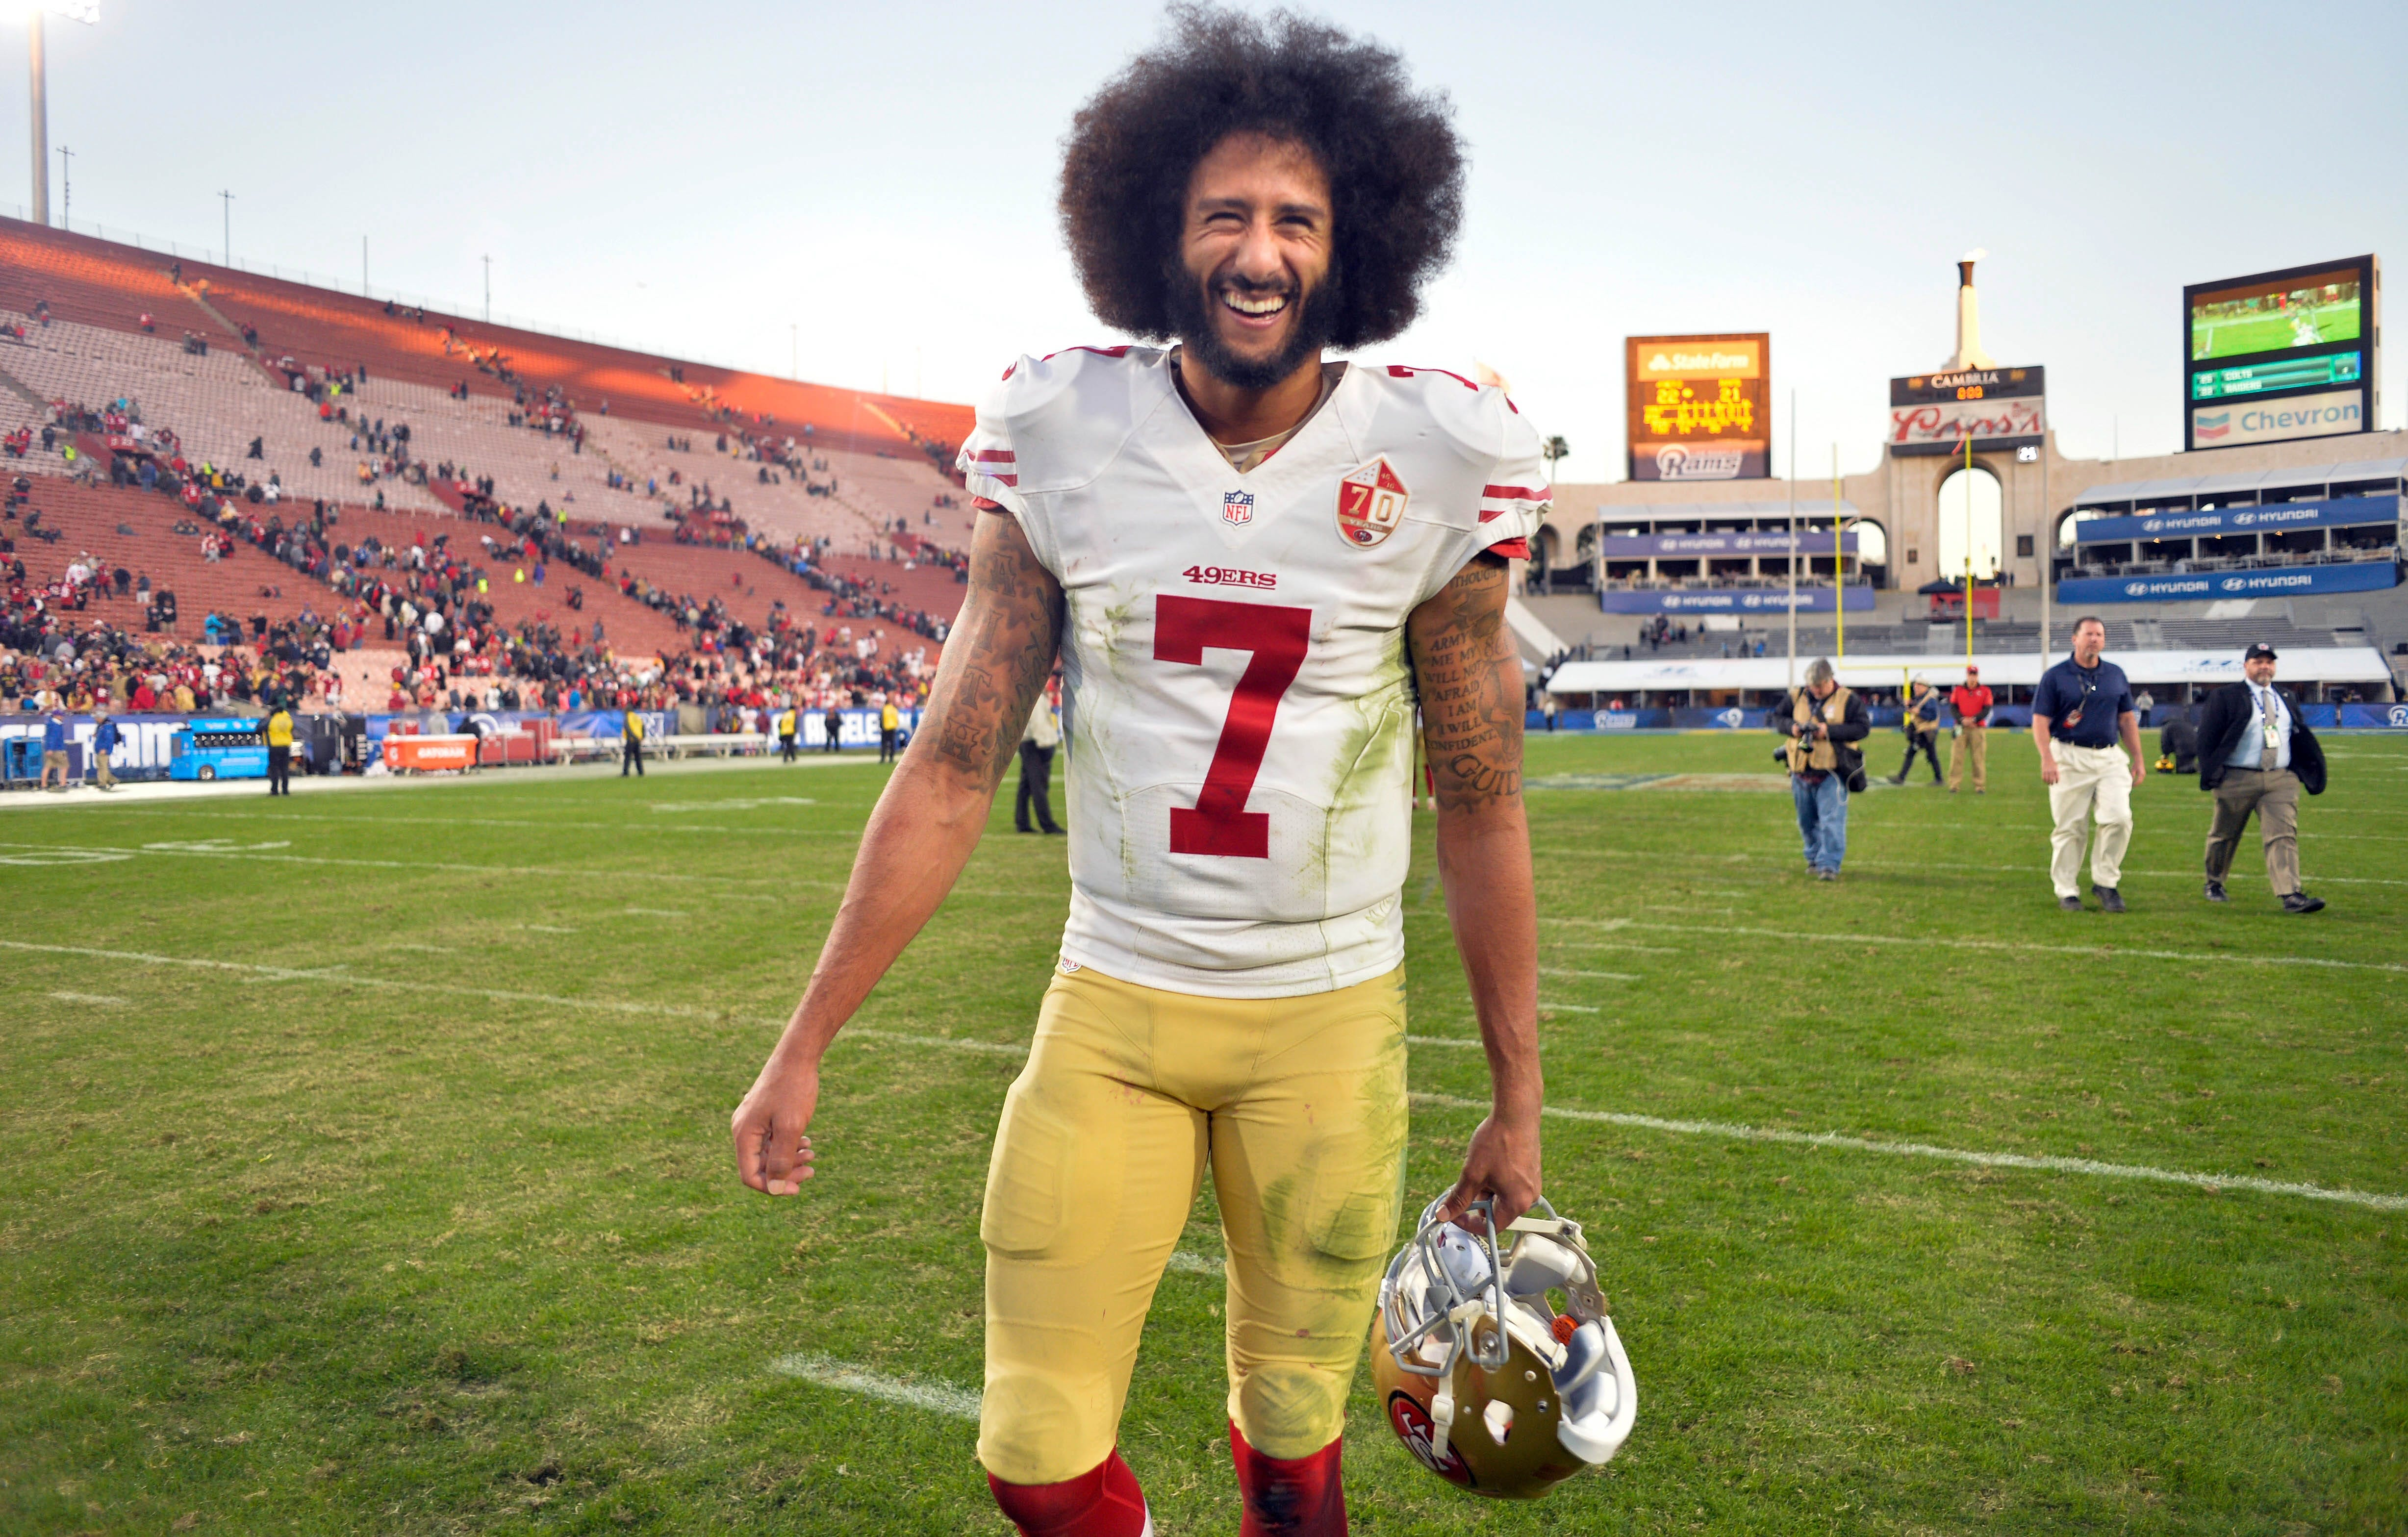 'GQ' magazine names Colin Kaepernick its Citizen of the Year